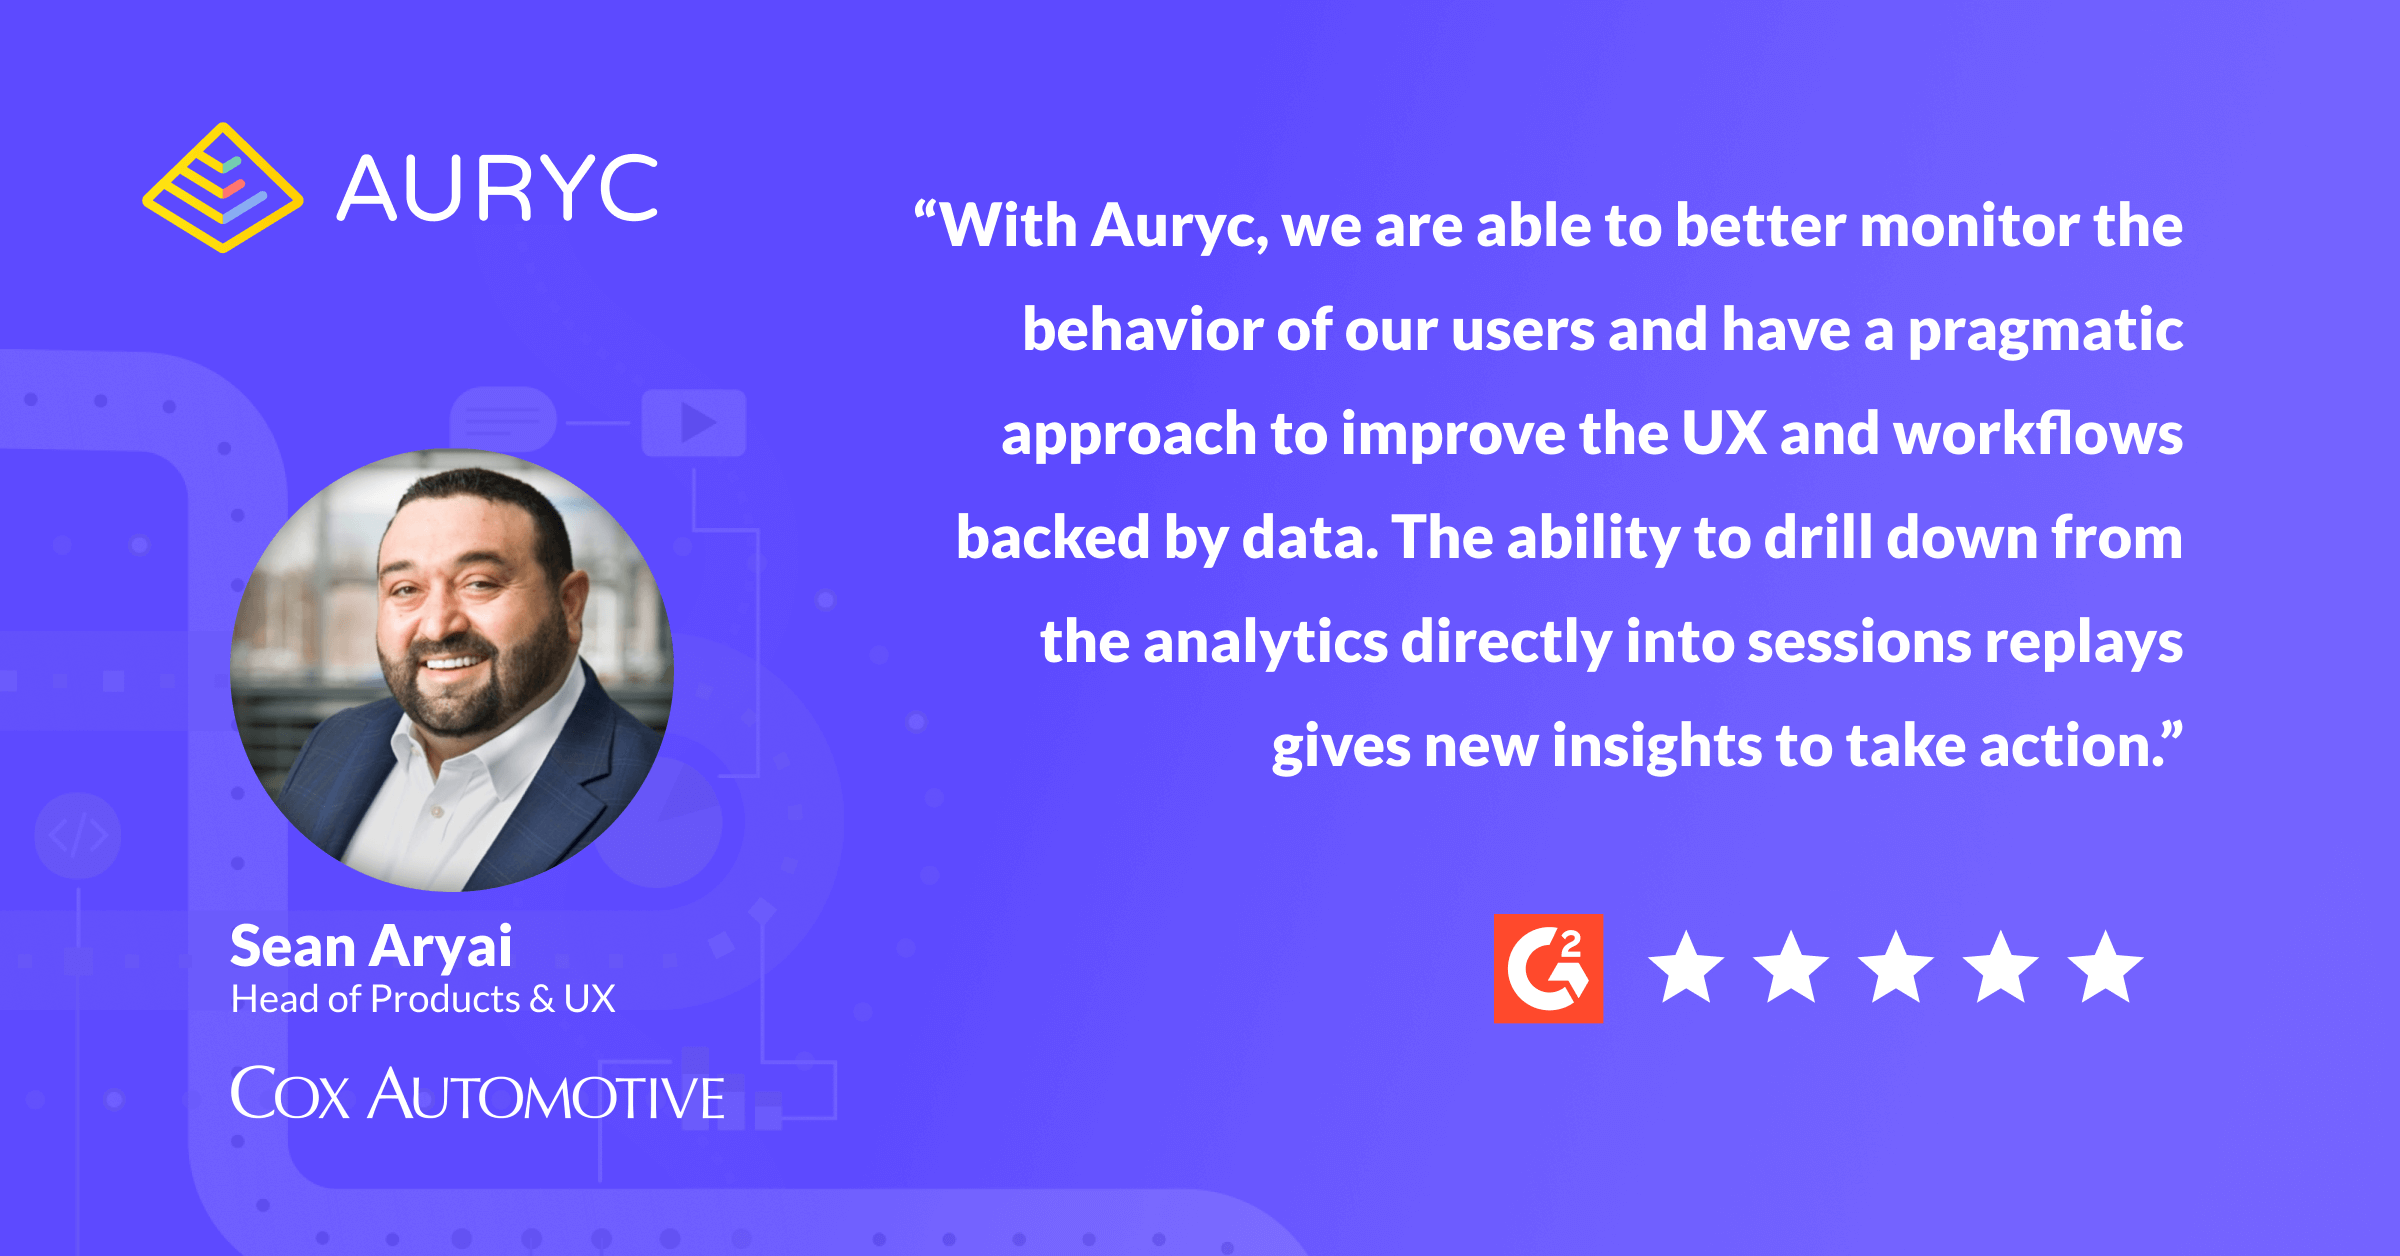 Auryc Review - Qualtrics Integration - Sean Aryai - Session Replay and Analytics Gives New Insights to Take Action